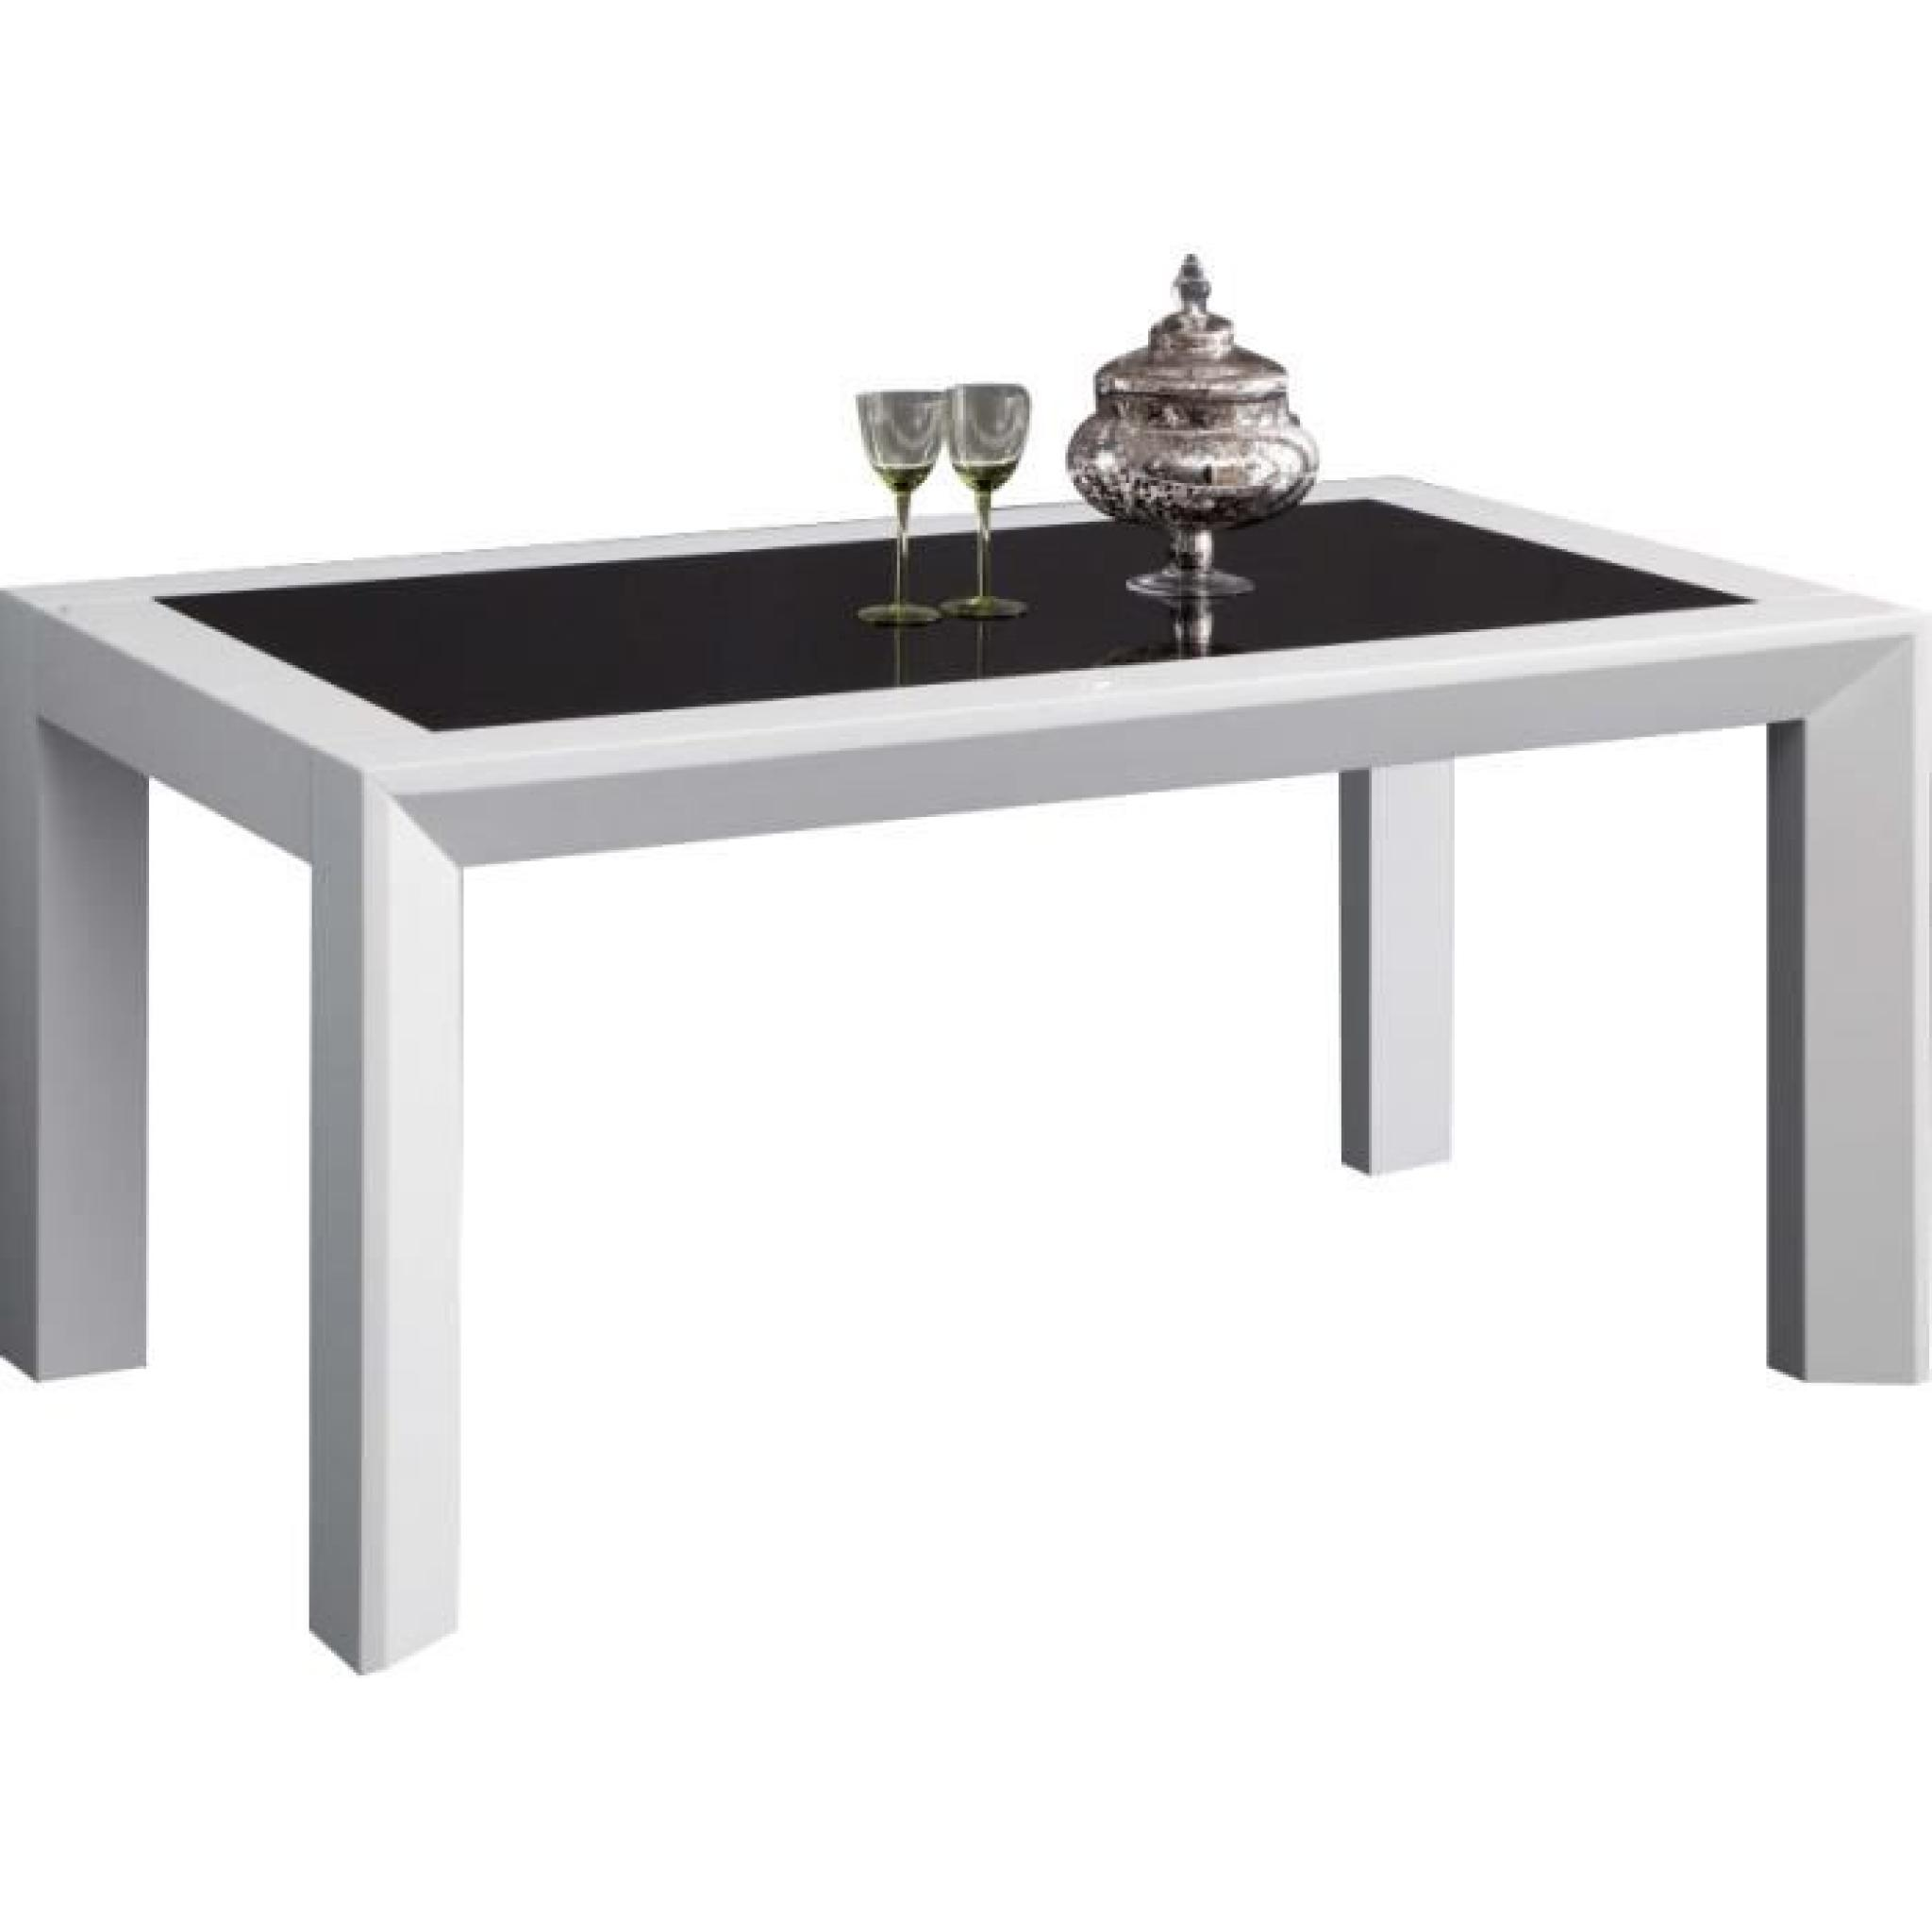 table salle manger 160cm blanc et noir achat vente. Black Bedroom Furniture Sets. Home Design Ideas